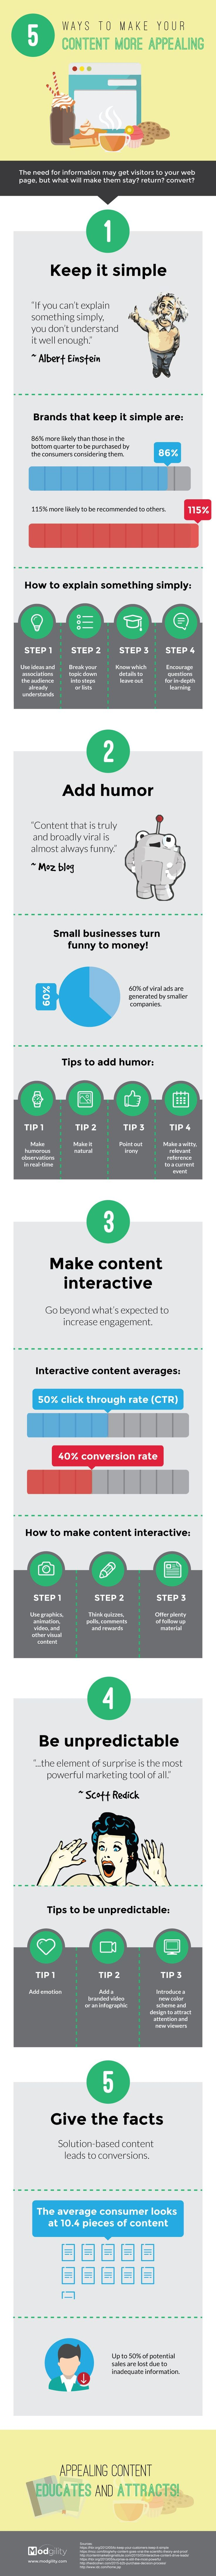 5 Ways To Make Content More Appealing [Infographic]